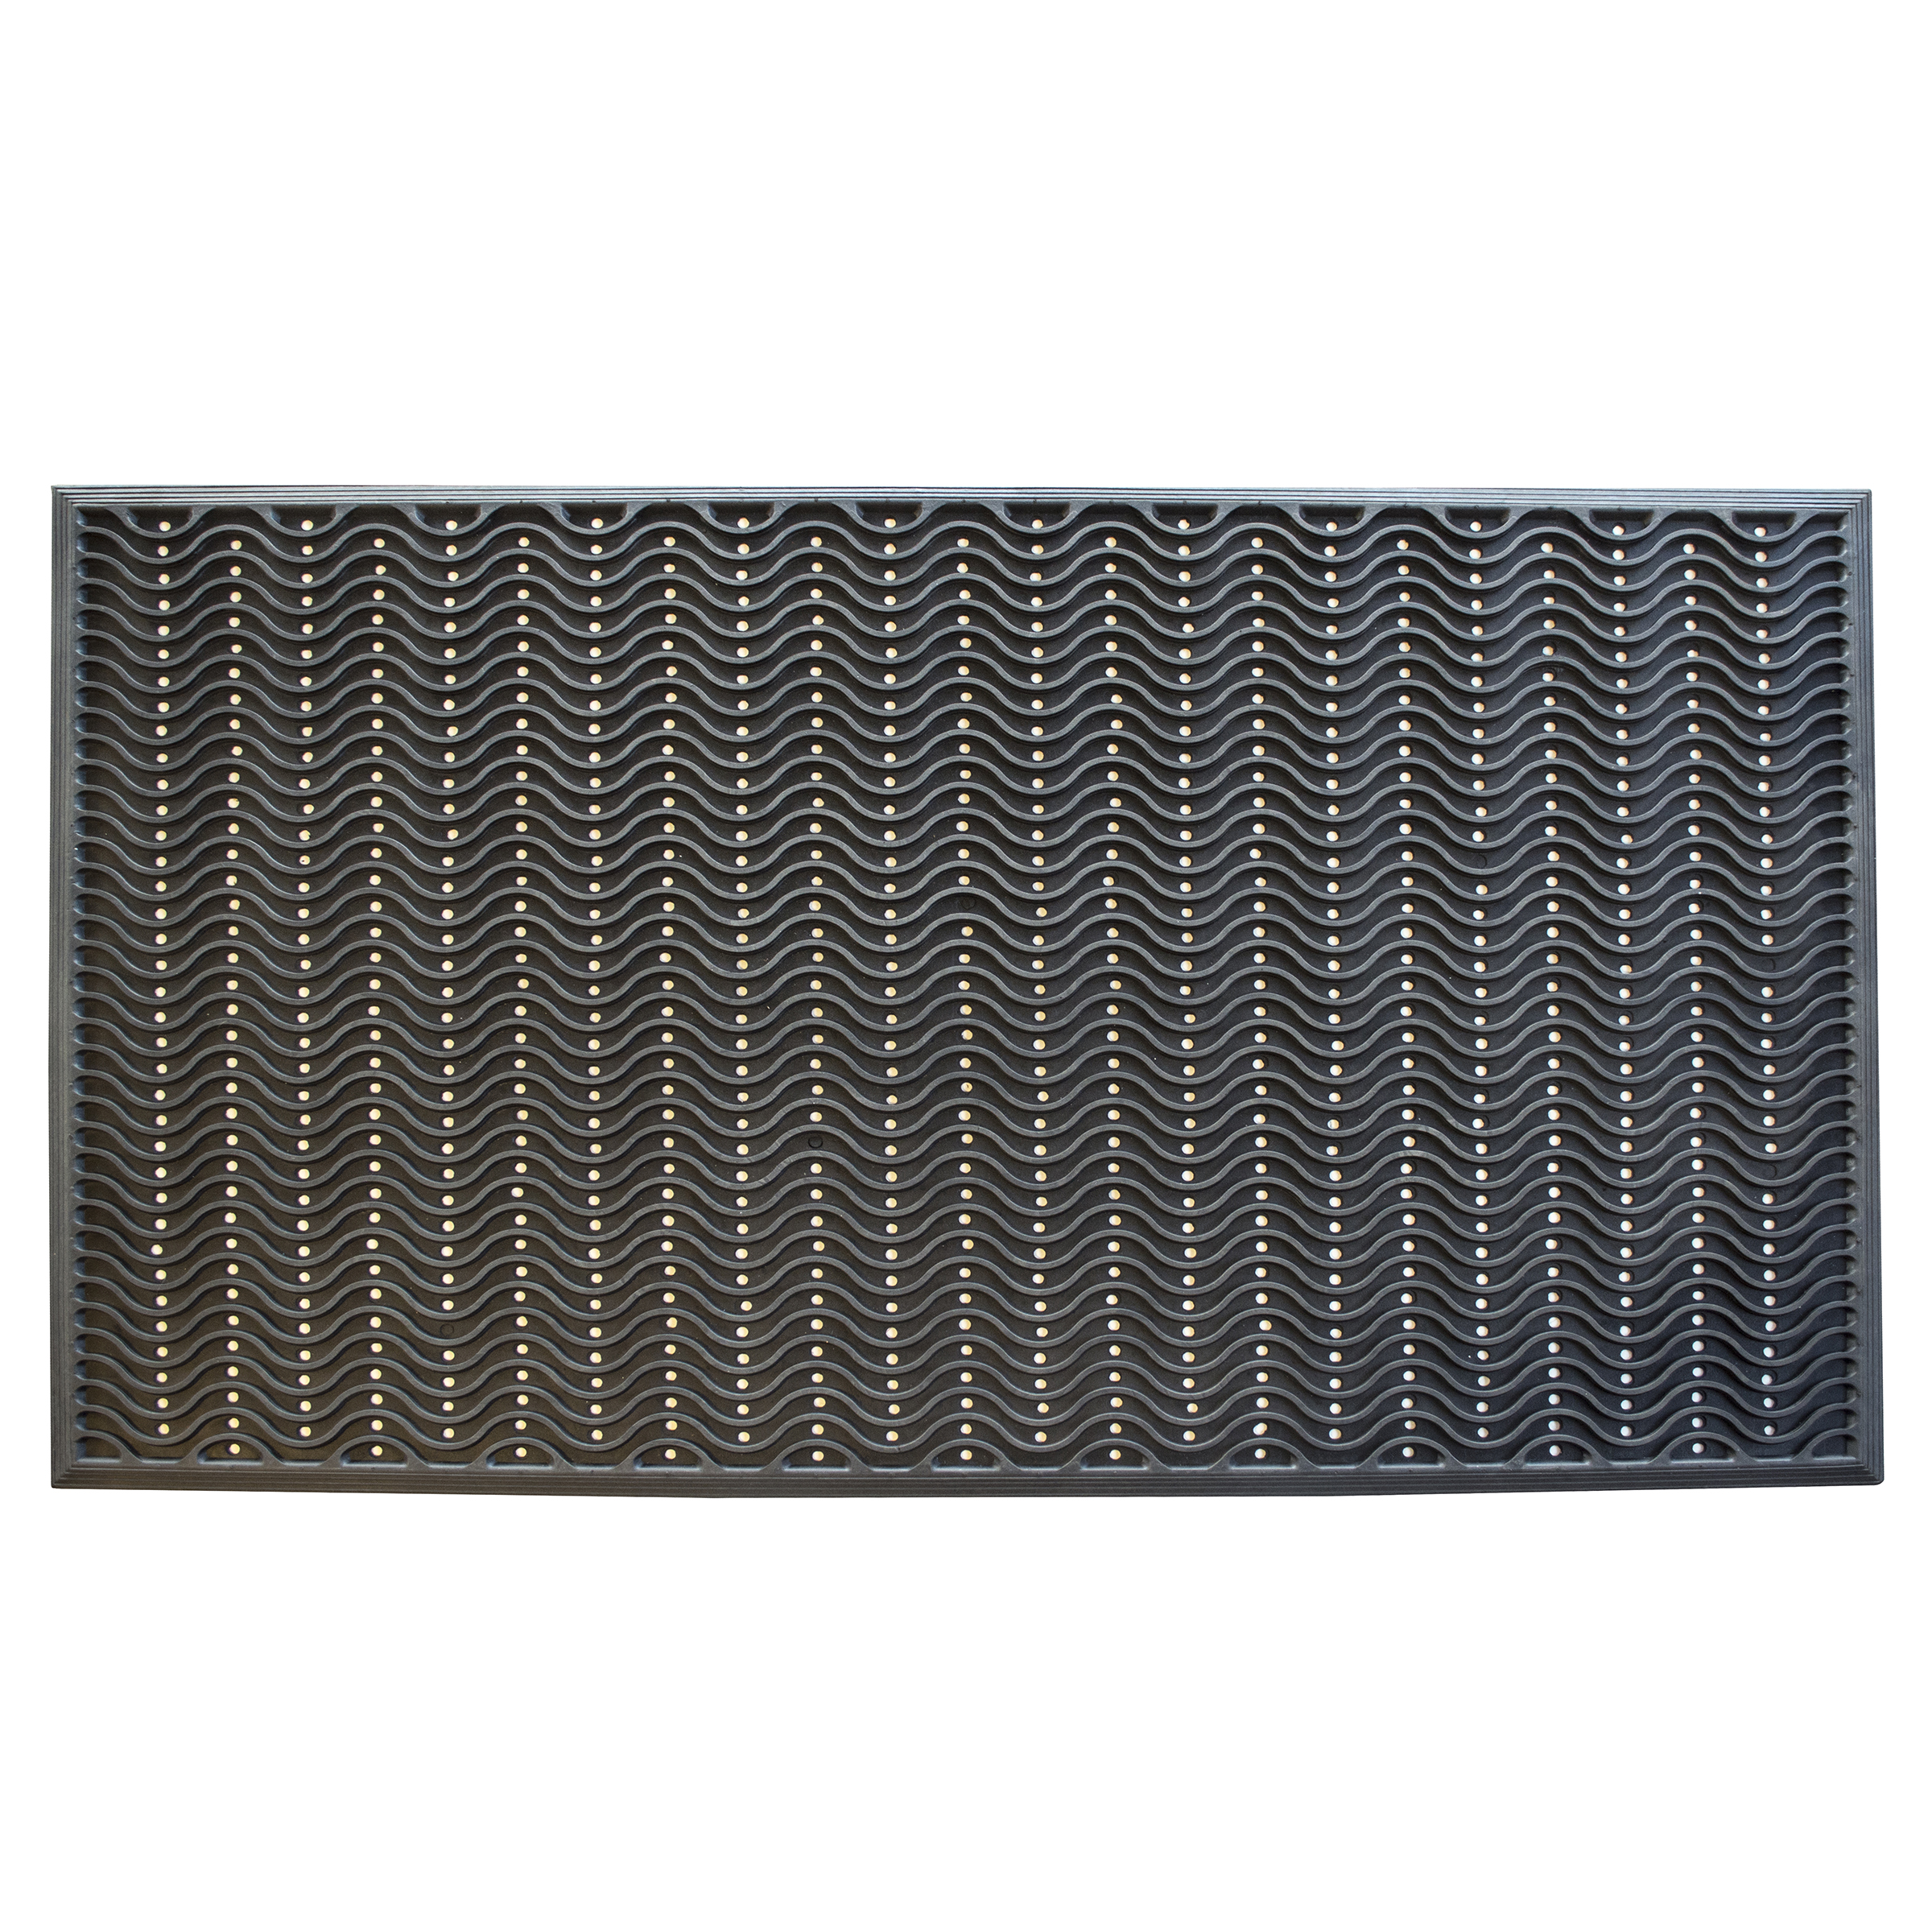 3 x 5 Foot Commercial Rubber Scraper Mat